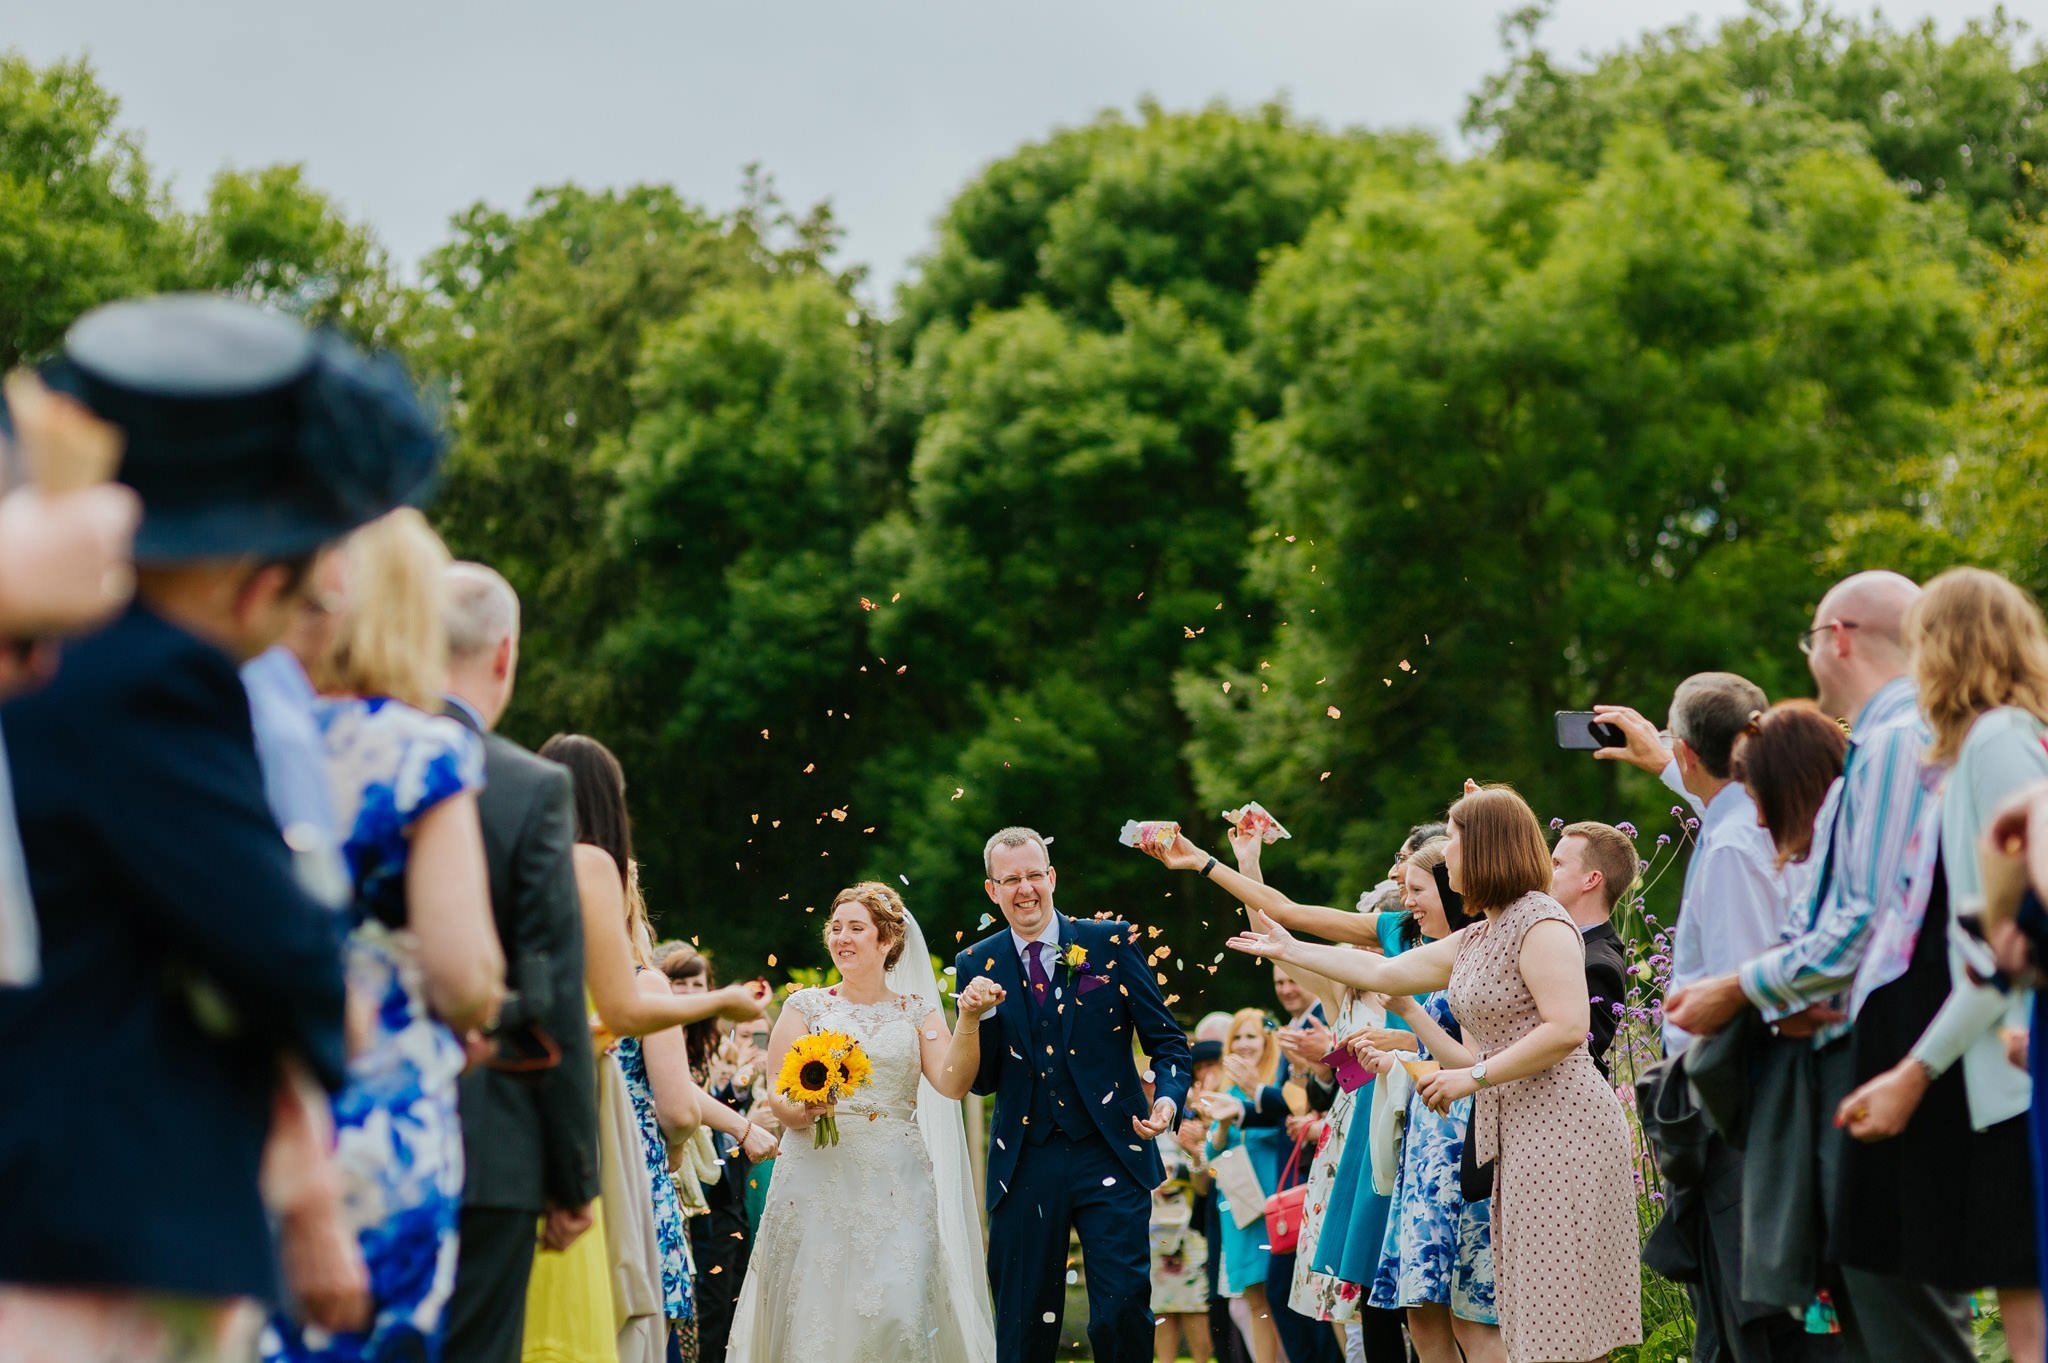 Wedding photography at Homme House in Herefordshire, West Midlands 37